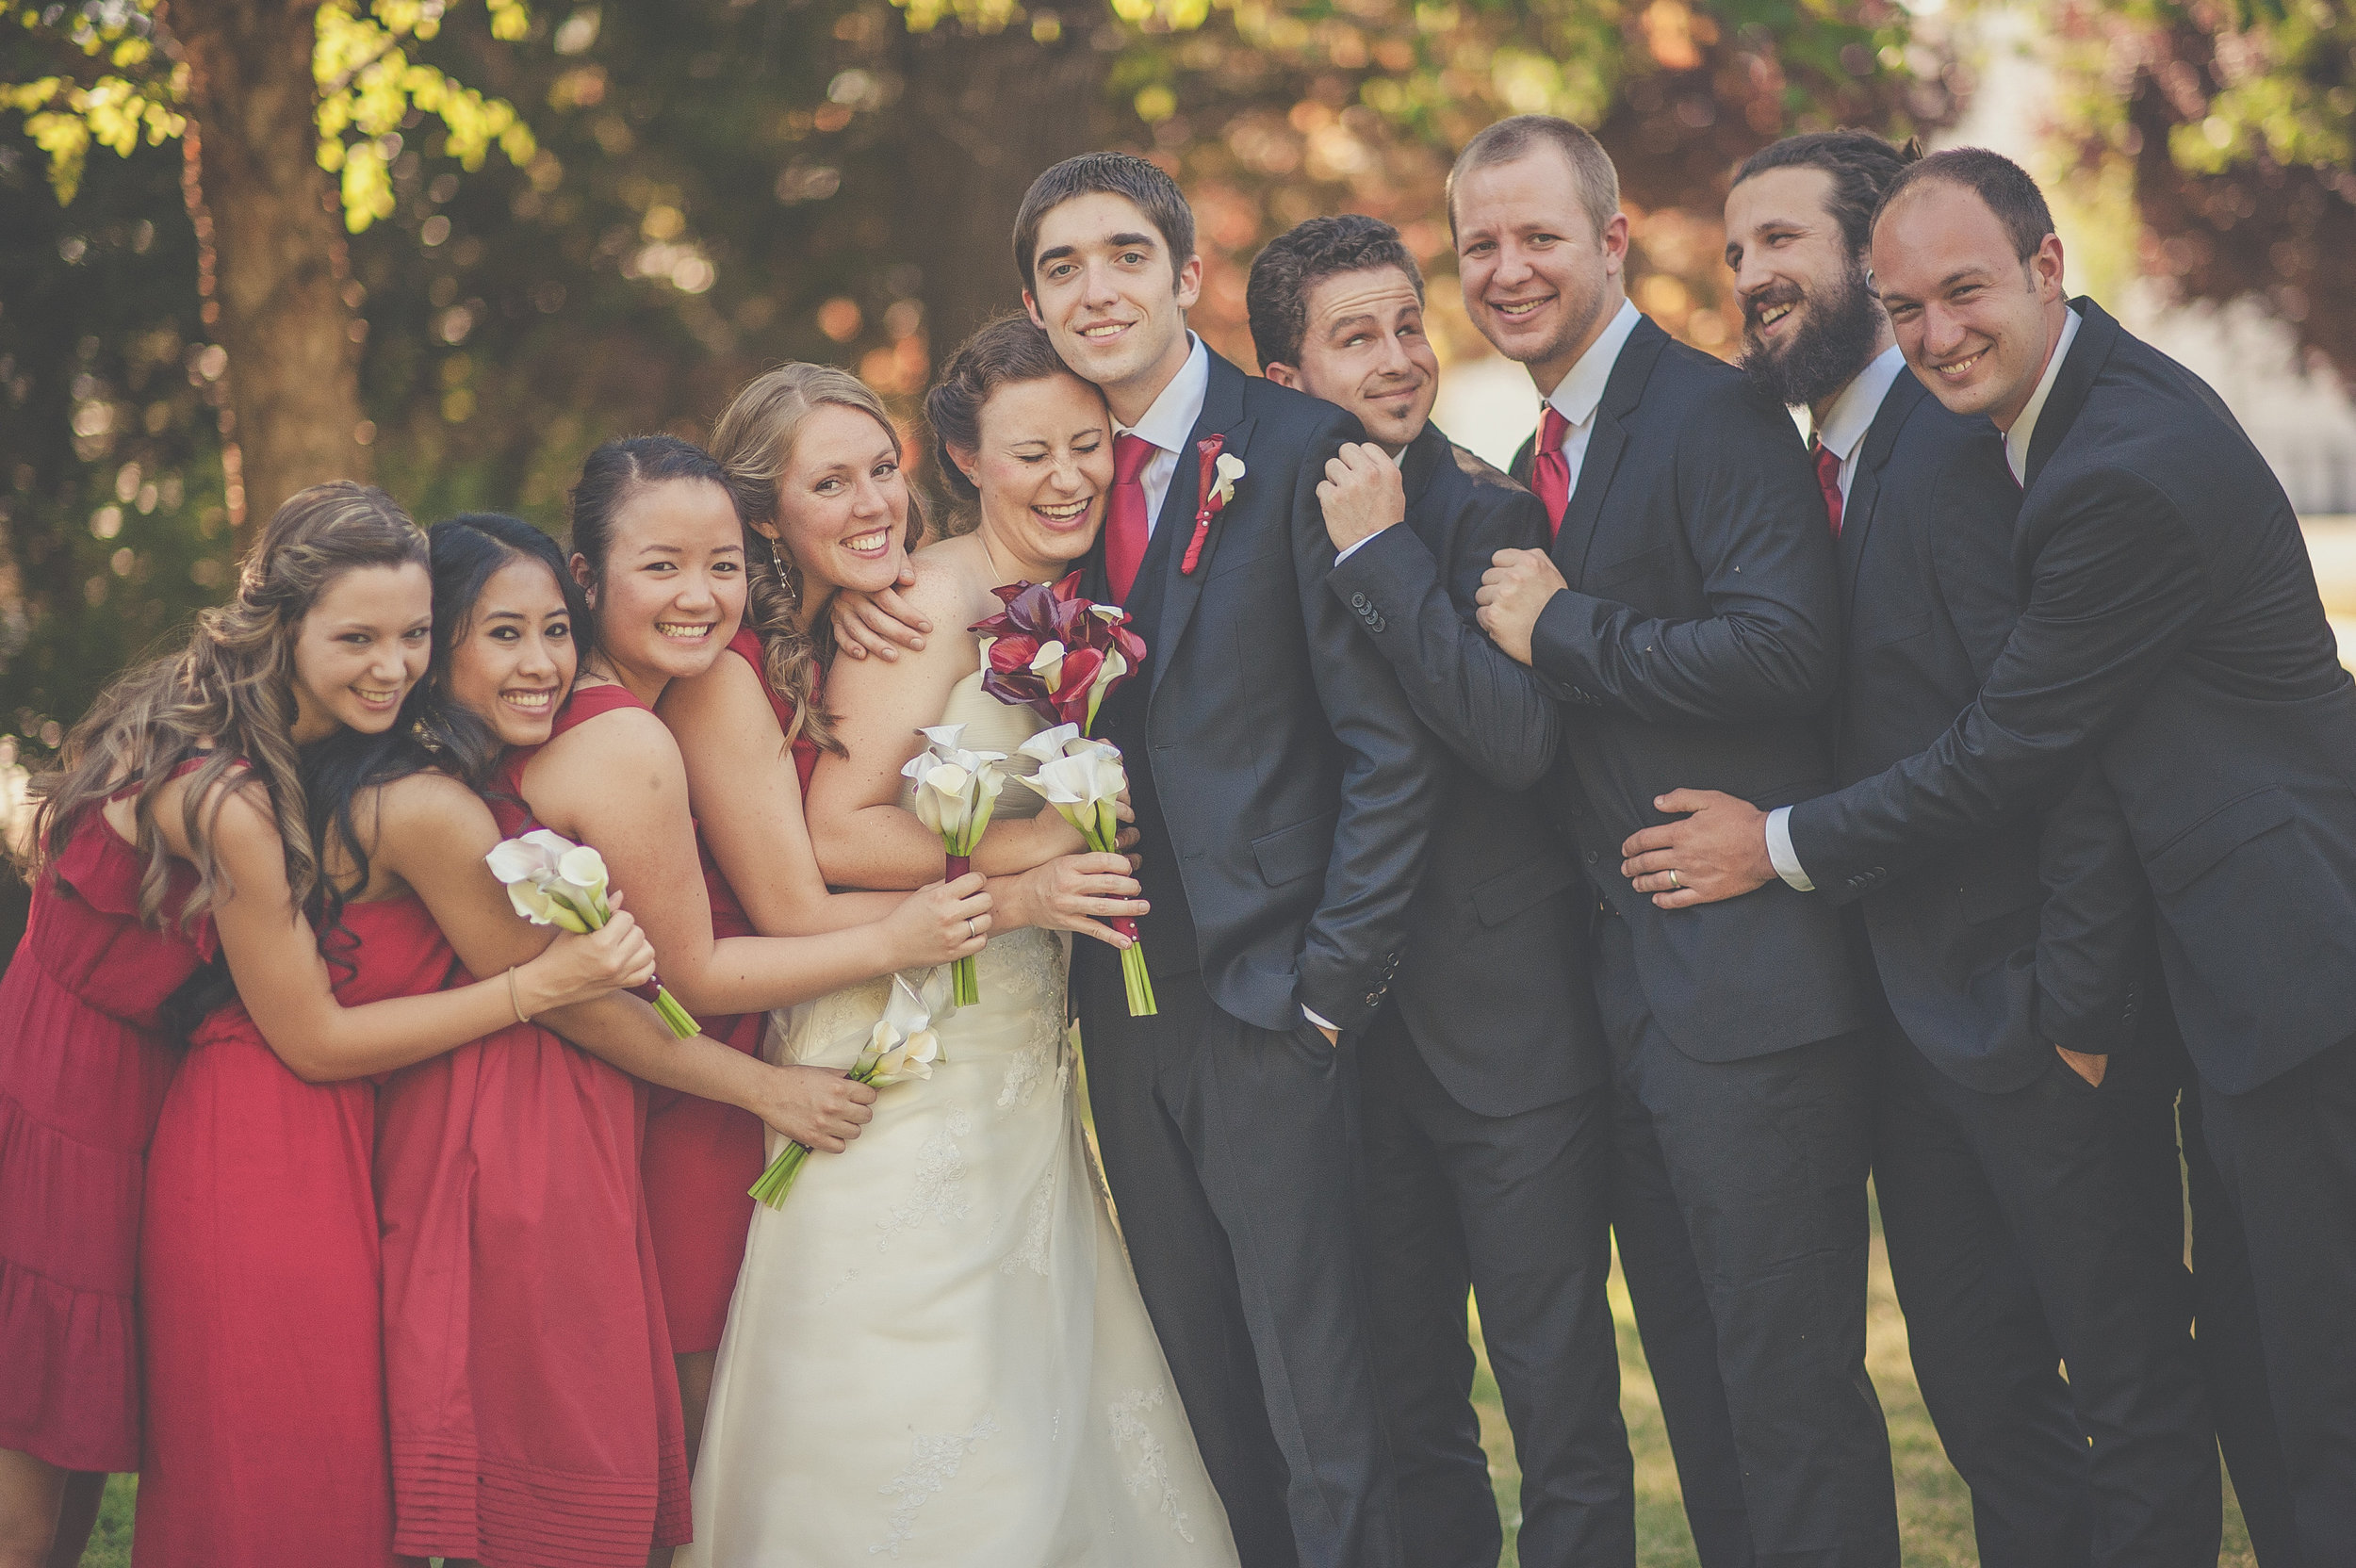 Bride & Groom + Bridal Party -0090.jpg